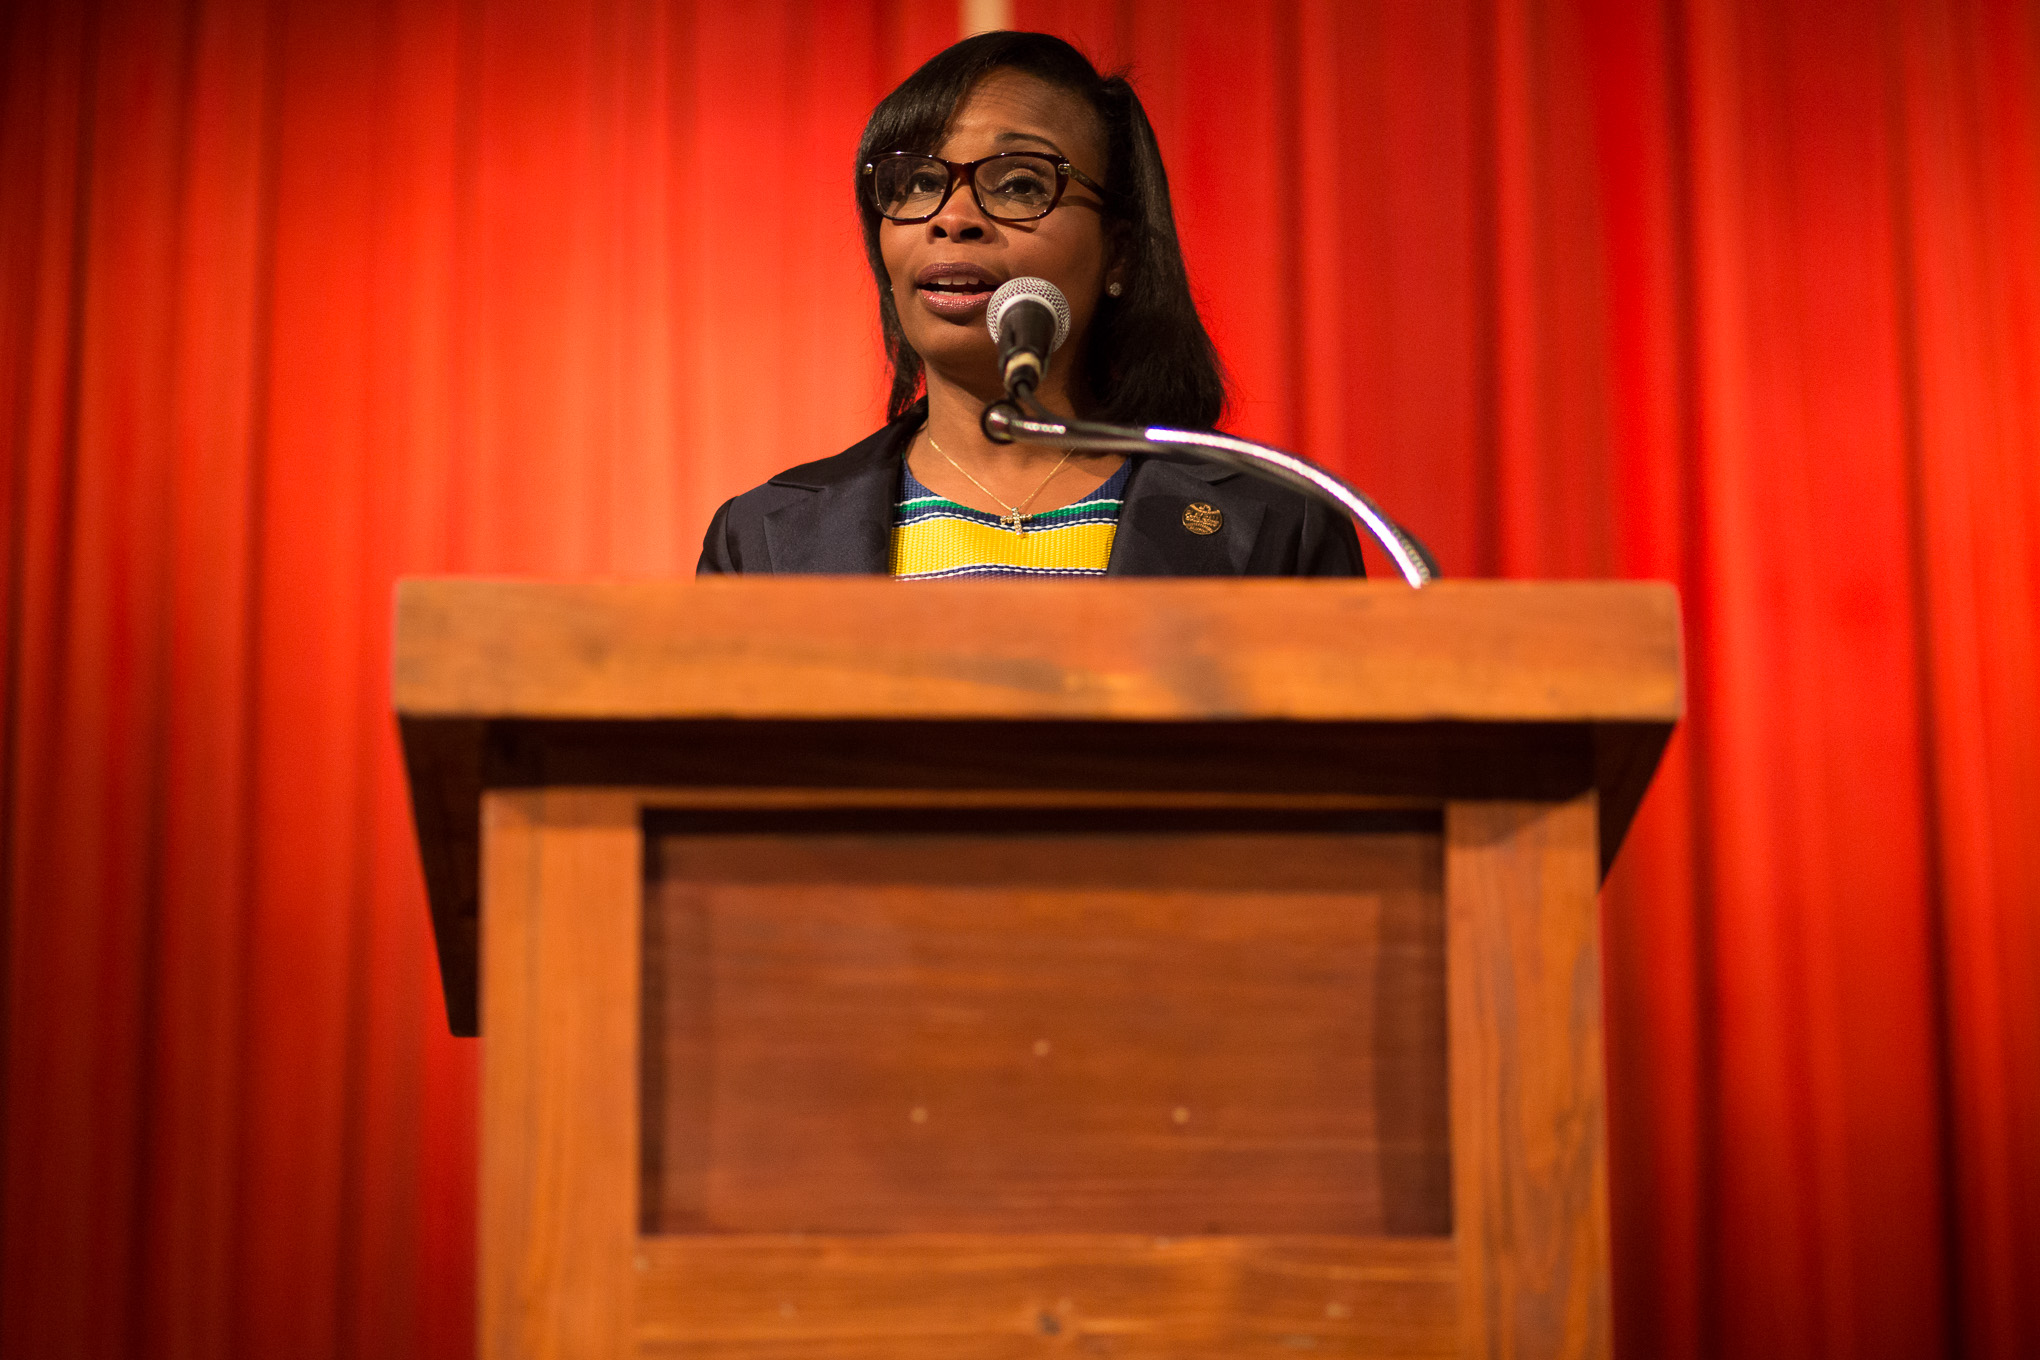 Mayor Ivy Taylor gives introductory remarks speaking to the impact baseball could have in San Antonio. Photo by Scott Ball.